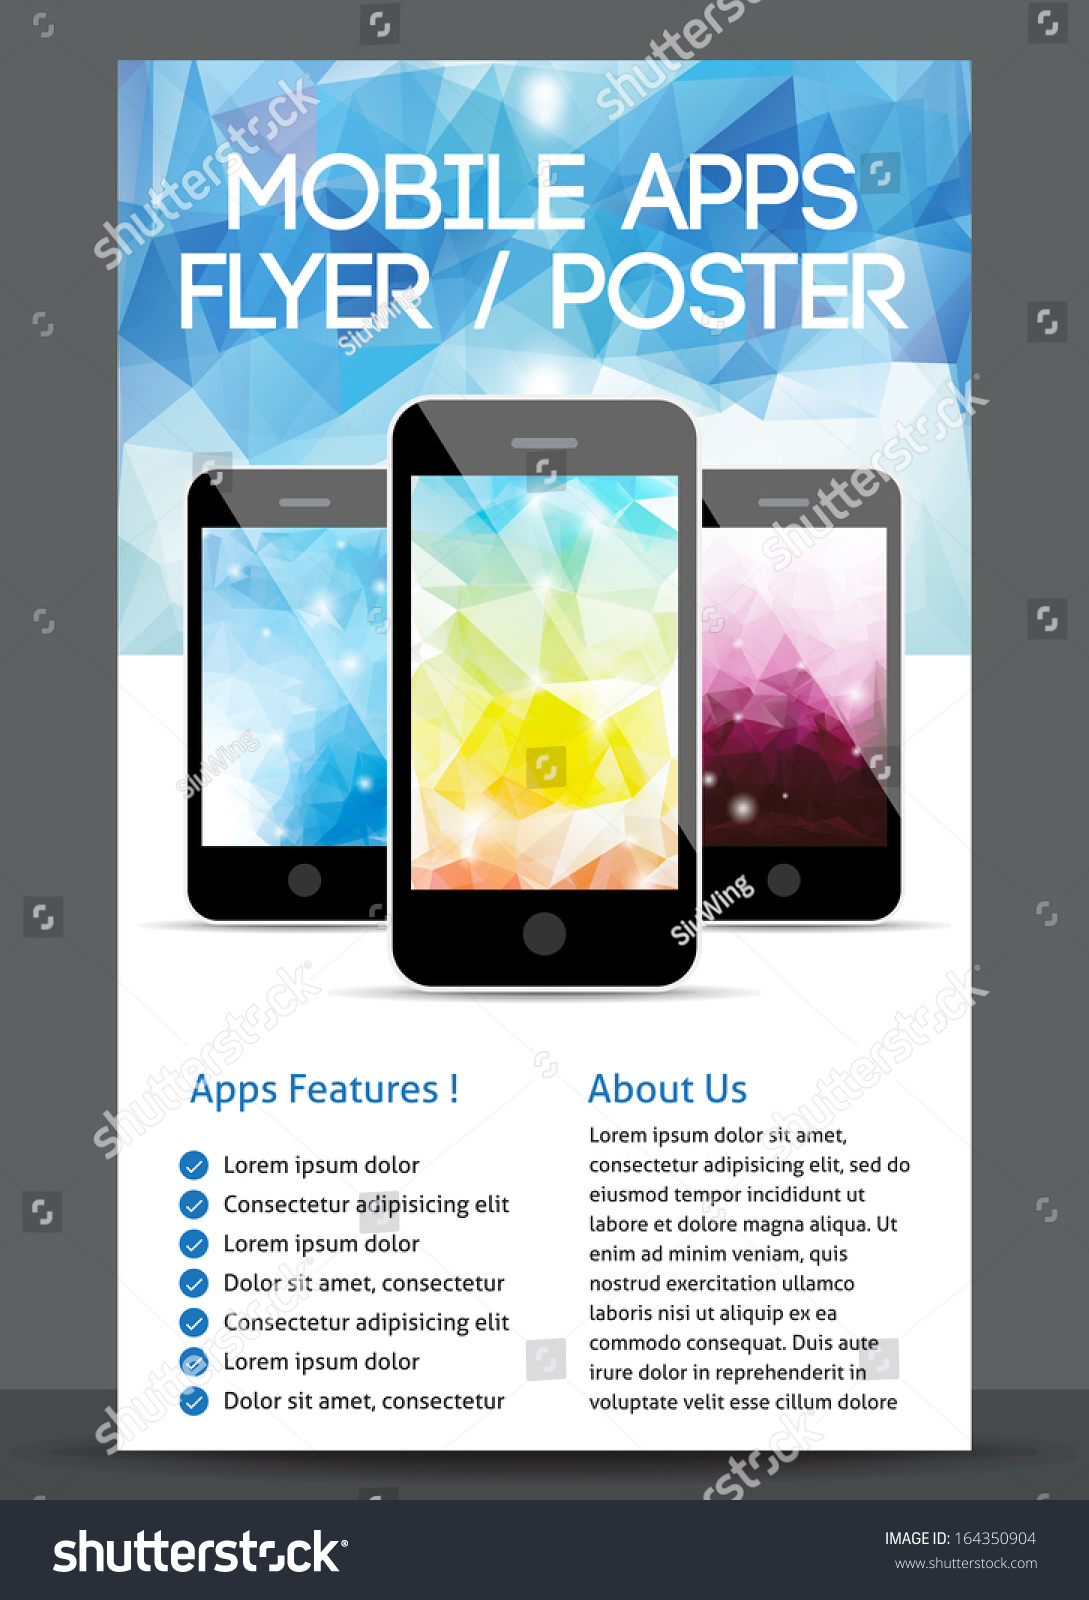 Poster design app - Mobile App Flyer And Poster Design